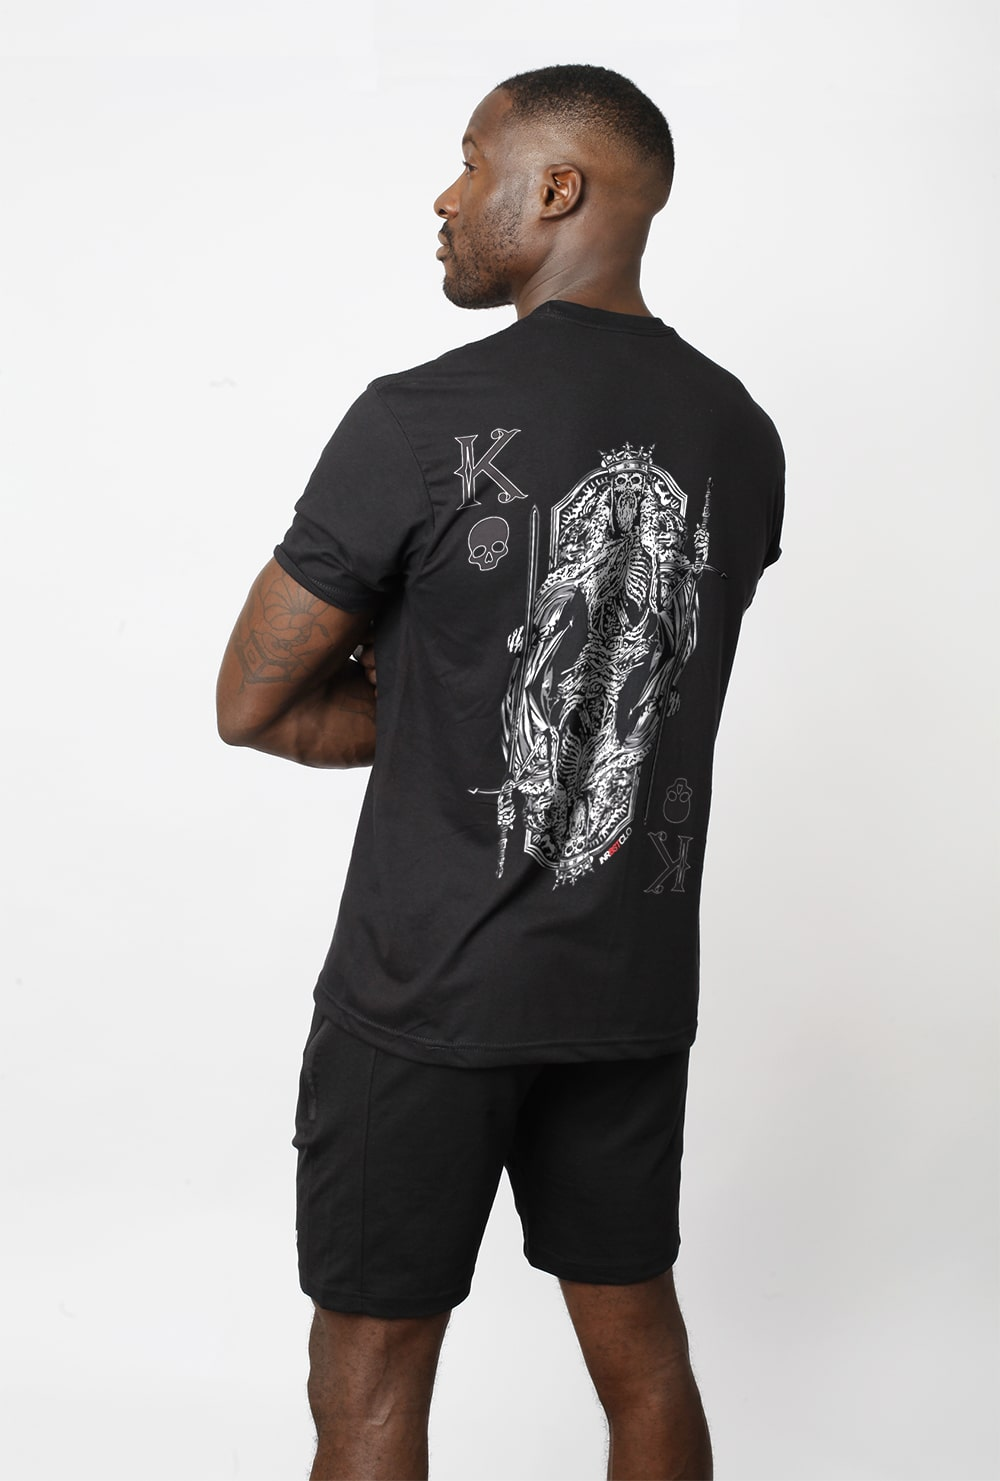 res-king-of-death-v2-tee-min